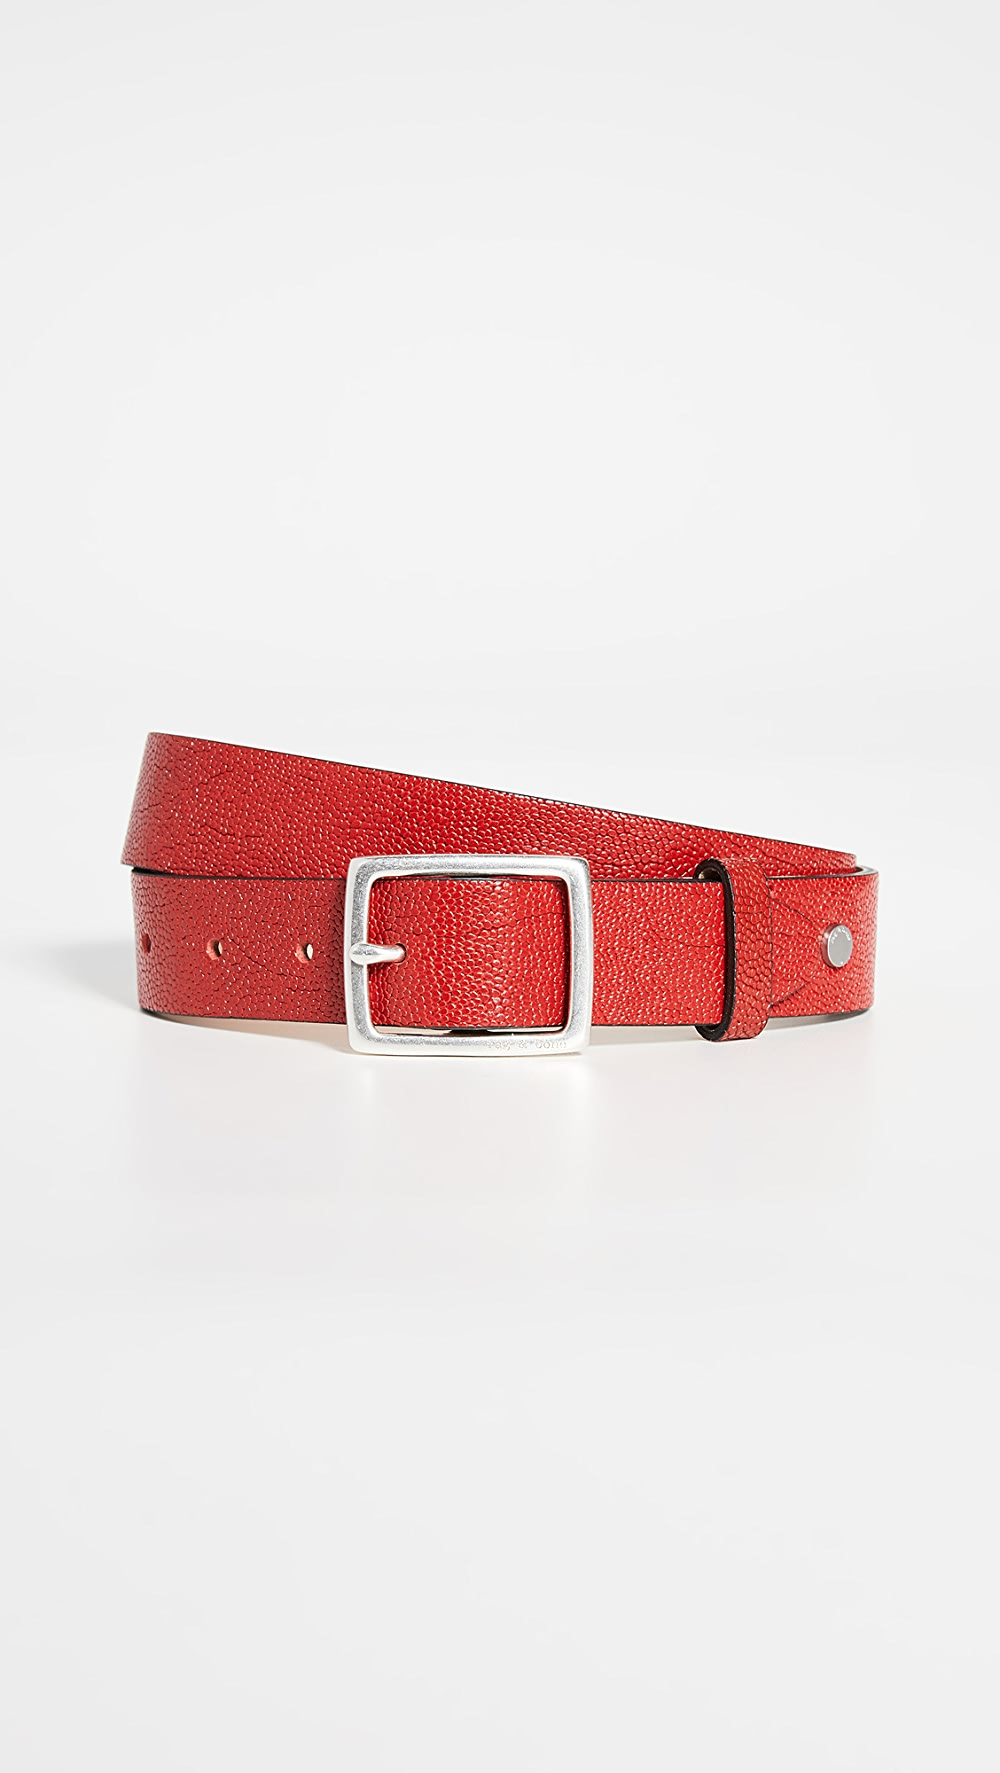 Delicious Rag & Bone - Boyfriend Belt Making Things Convenient For The People